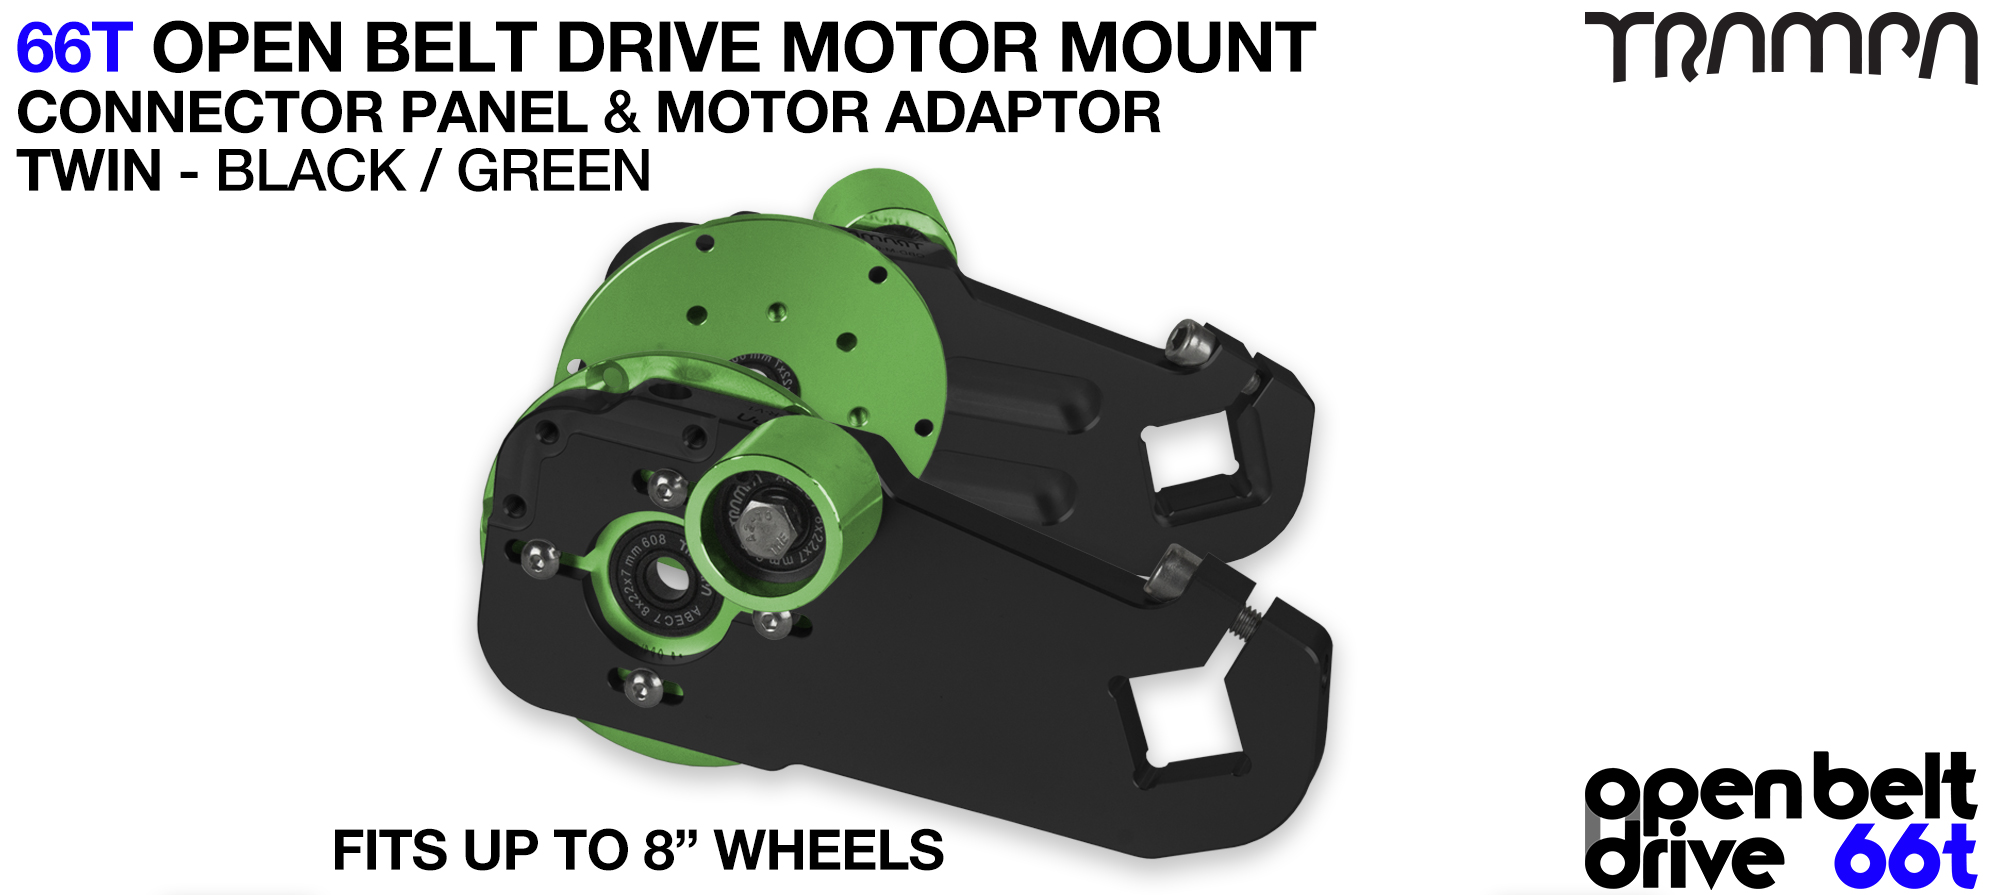 66T OPEN BELT DRIVE Motor Mount & Motor Adaptor - TWIN GREEN